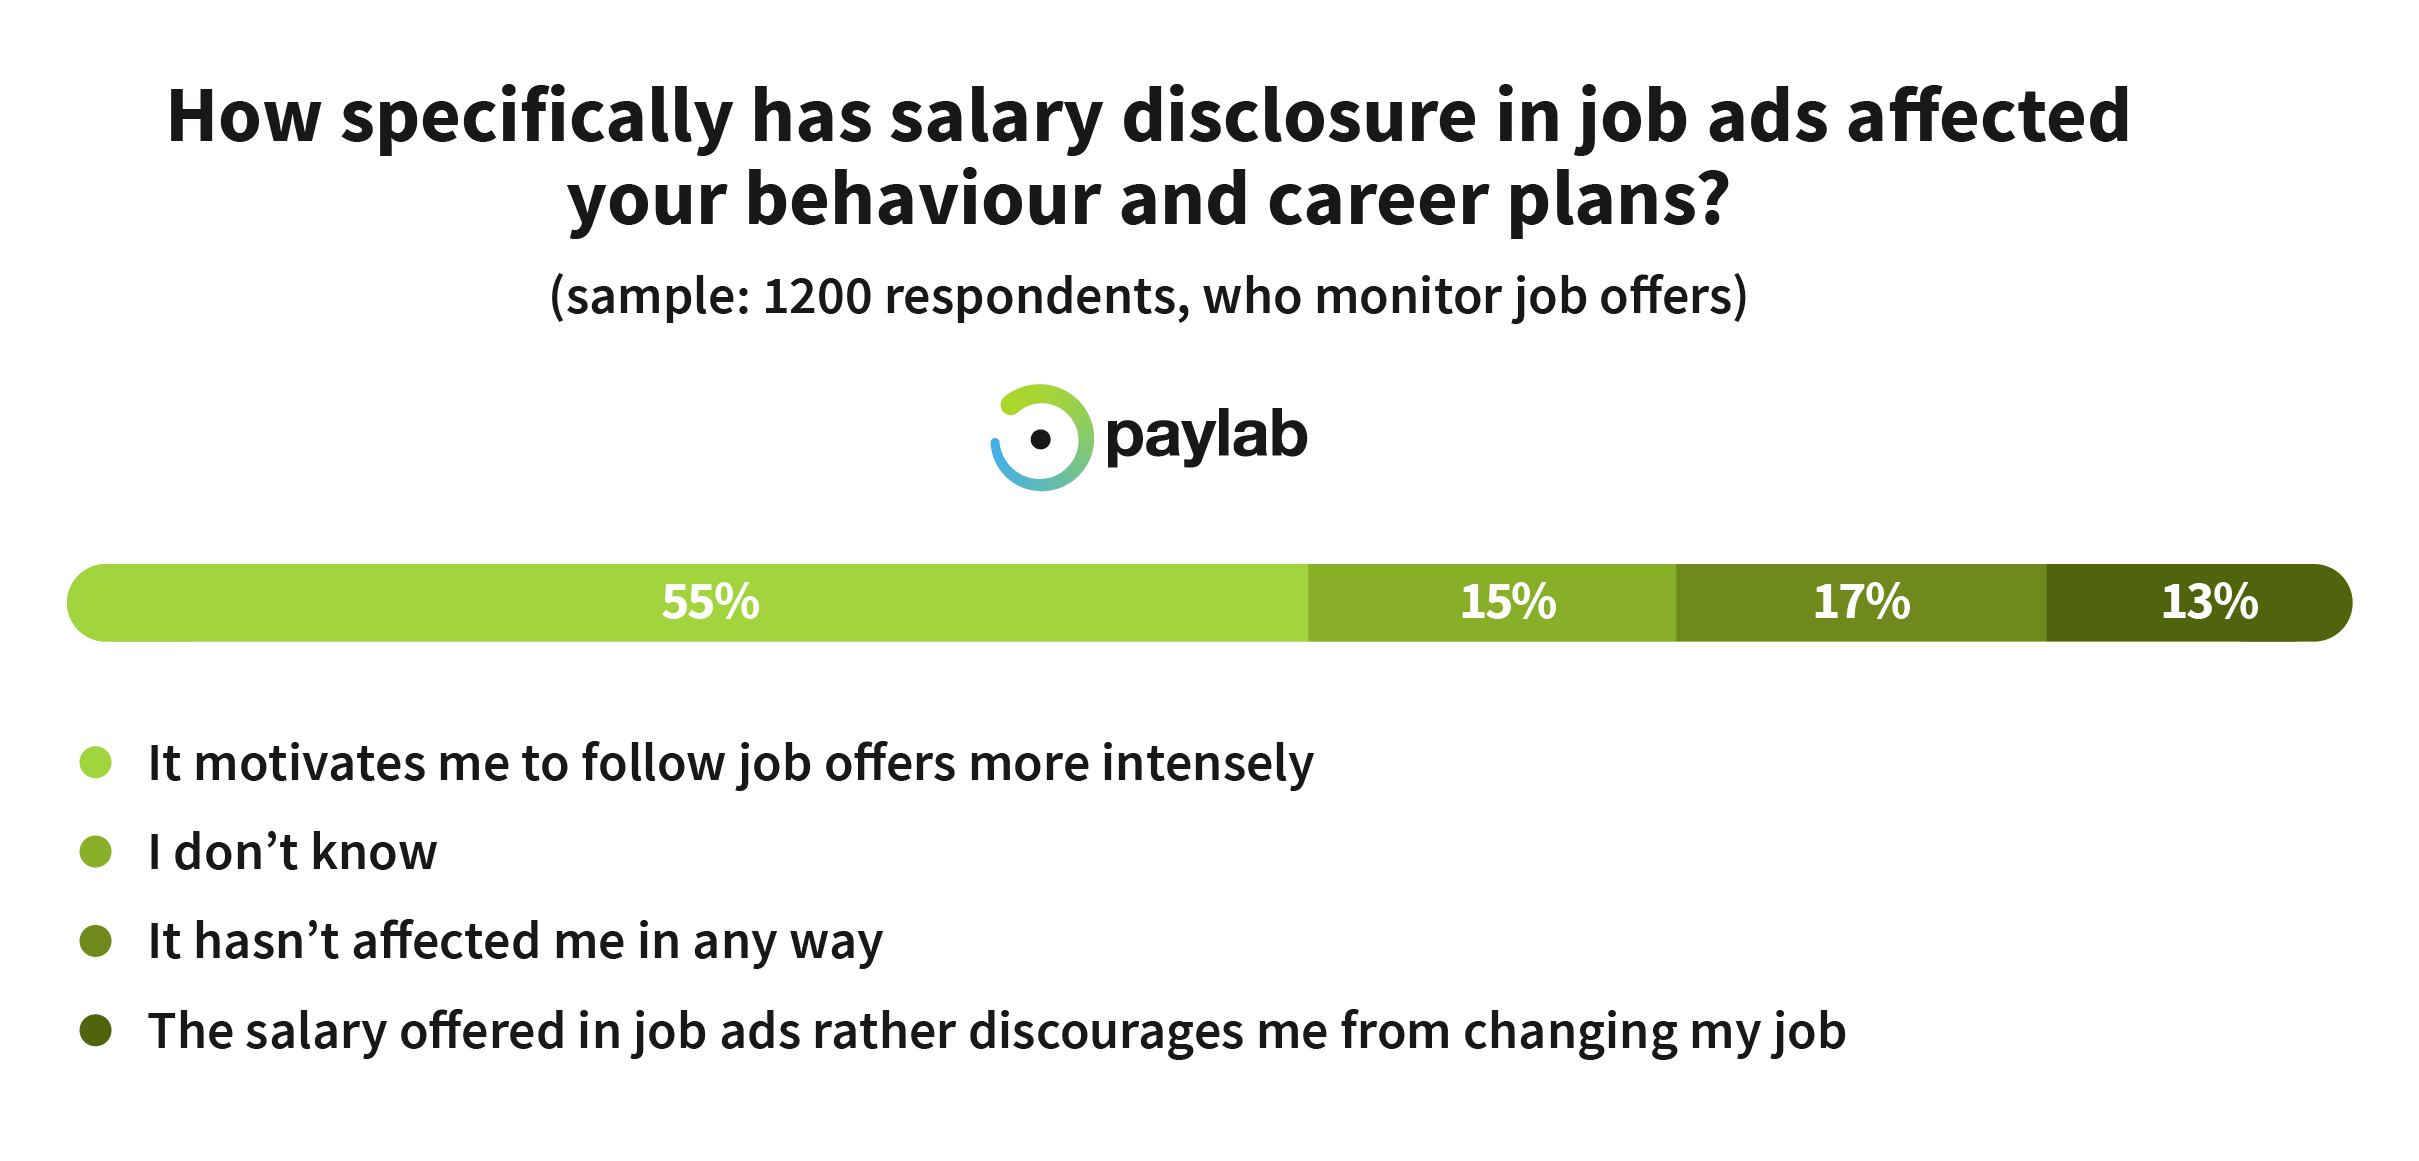 https://storage.googleapis.com/paylab/images/cms/2019/04/Paylab salary in job ads career behaviaour ob offers ads emloyees